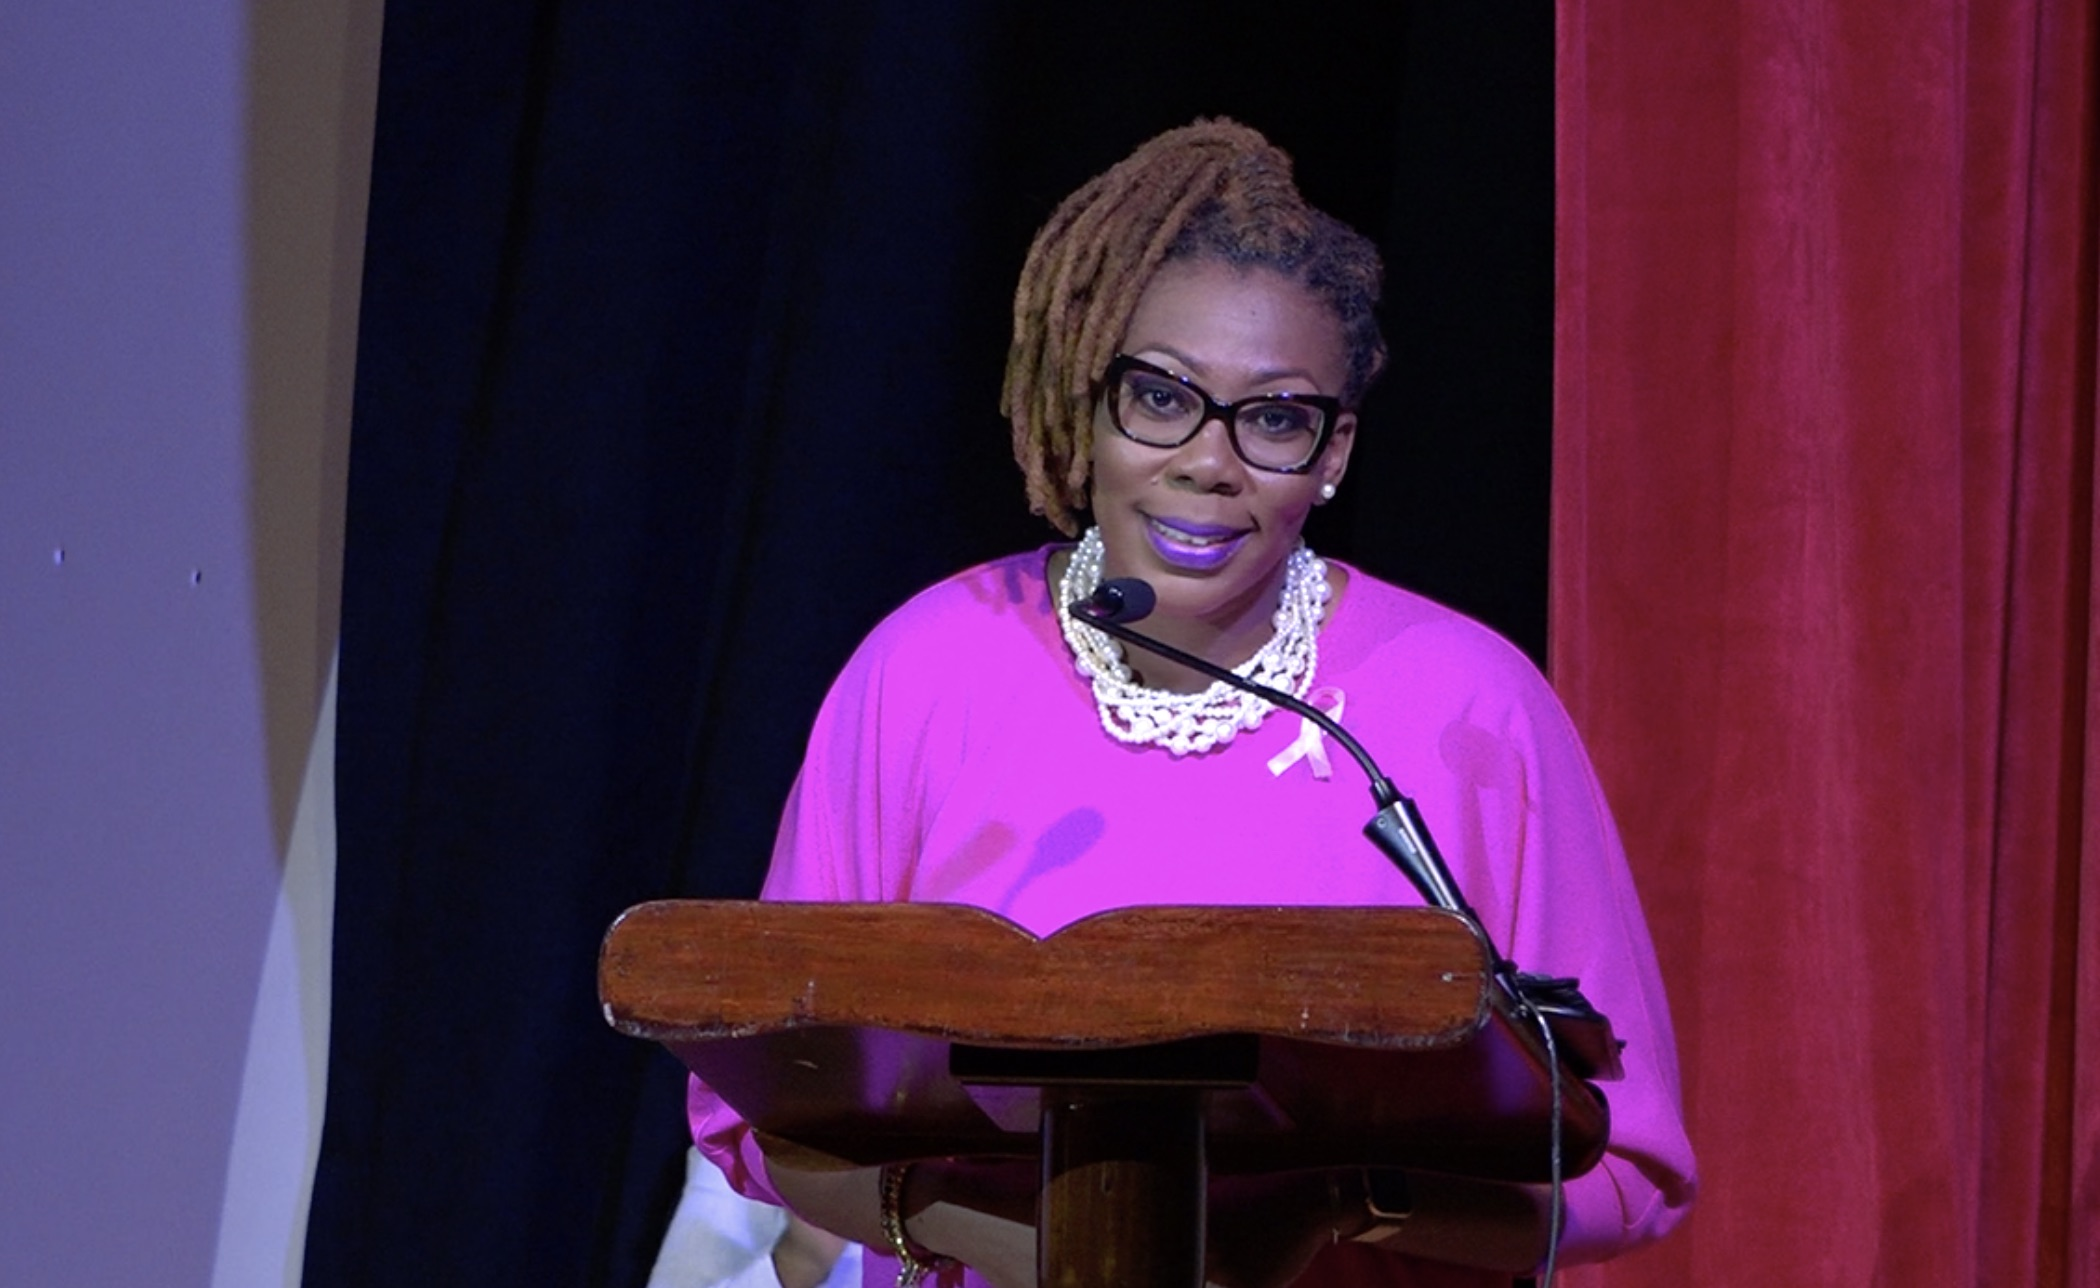 Ms. Camara Lee, a breast cancer survivor from Nevis, making her presentation as the featured speaker at the Ministry of Health's Breast Cancer Awareness Forum at the Nevis Performing Arts Centre on October 21, 2020